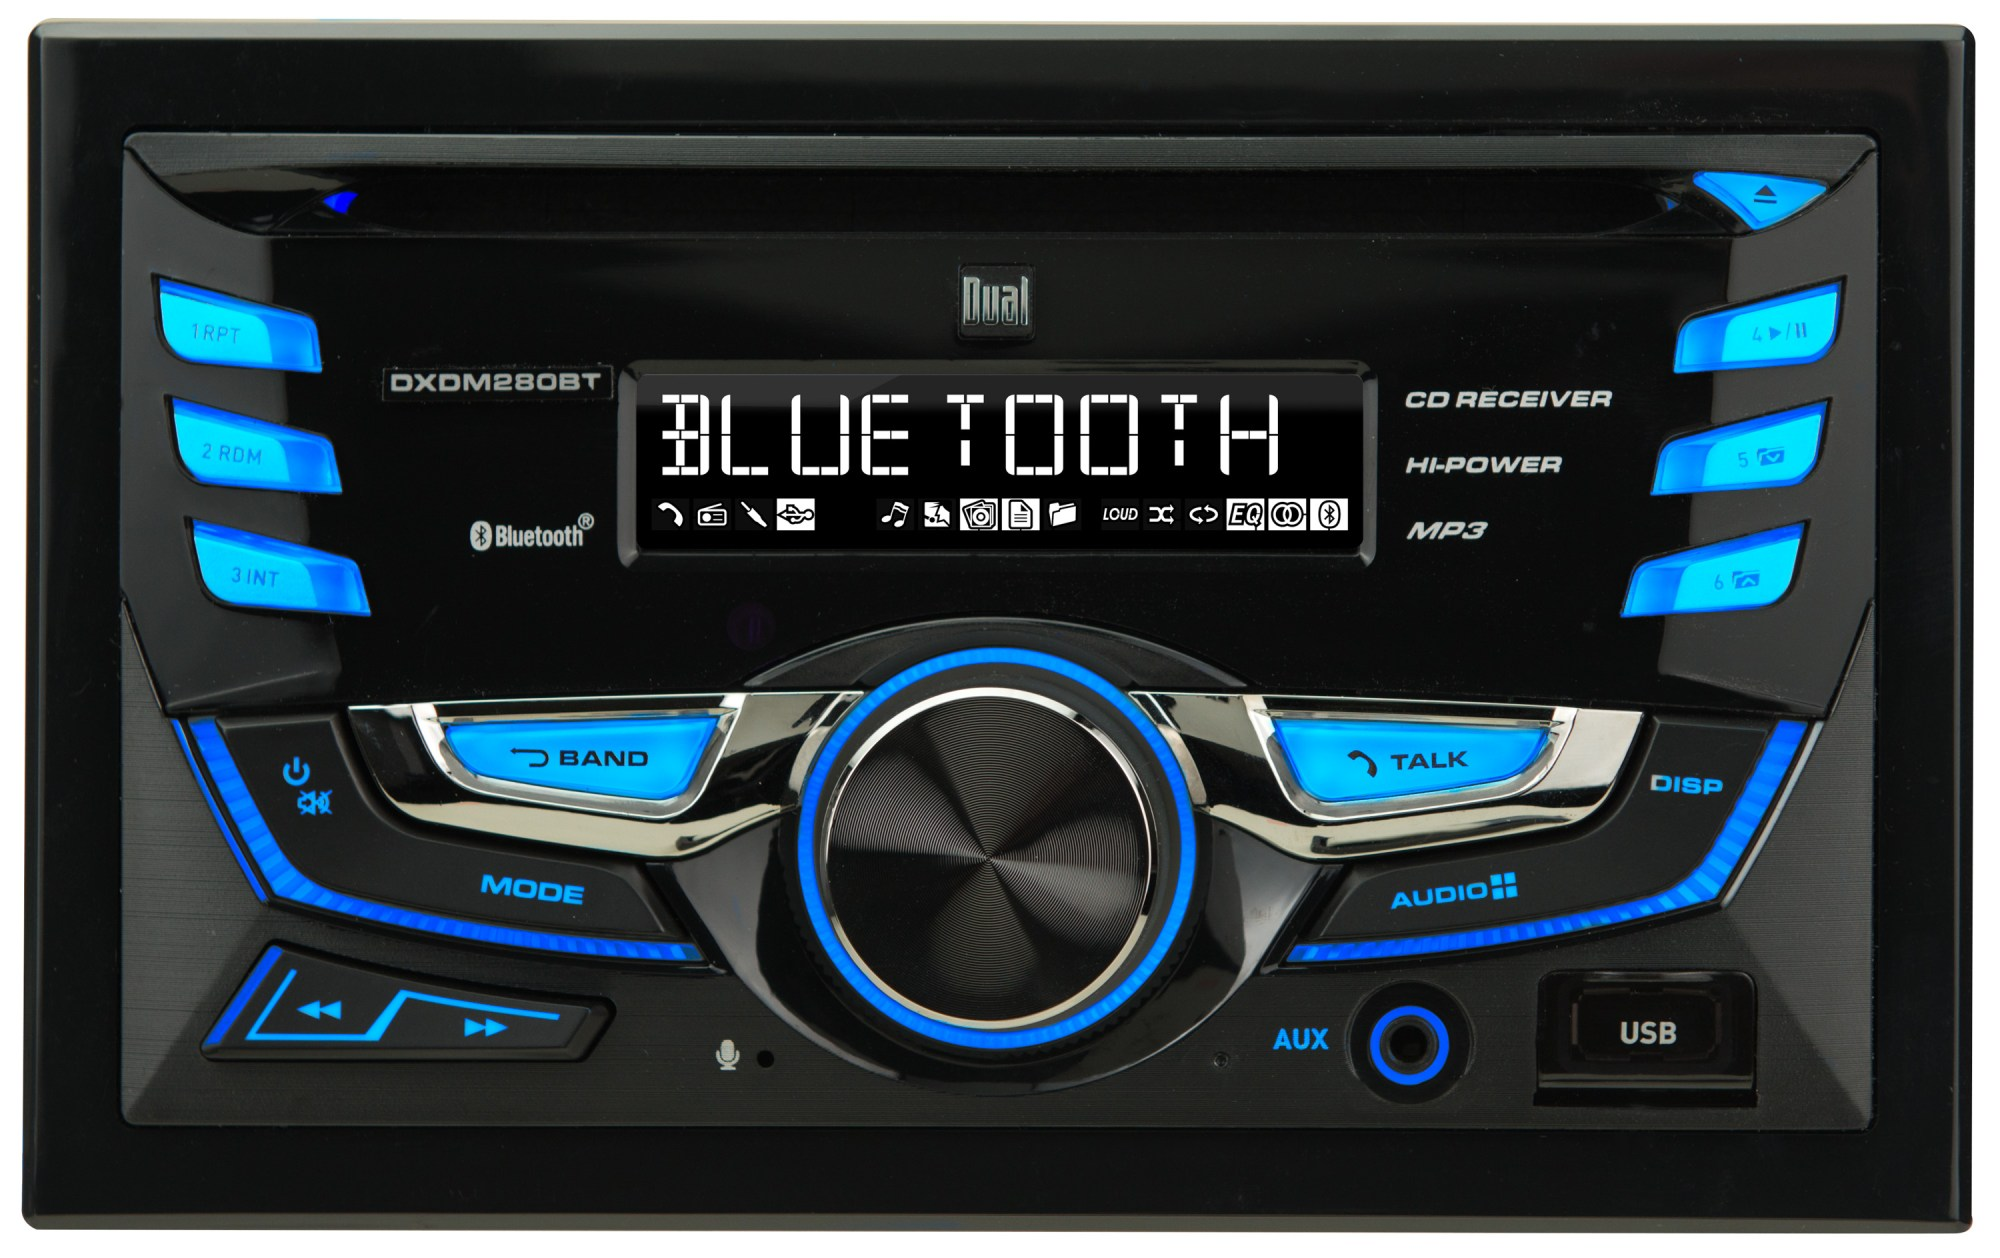 hight resolution of  dual electronics dxdm280bt multimedia lcd high resolution double din car stereo receiver with built in bluetooth cd usb mp3 wma player walmart com